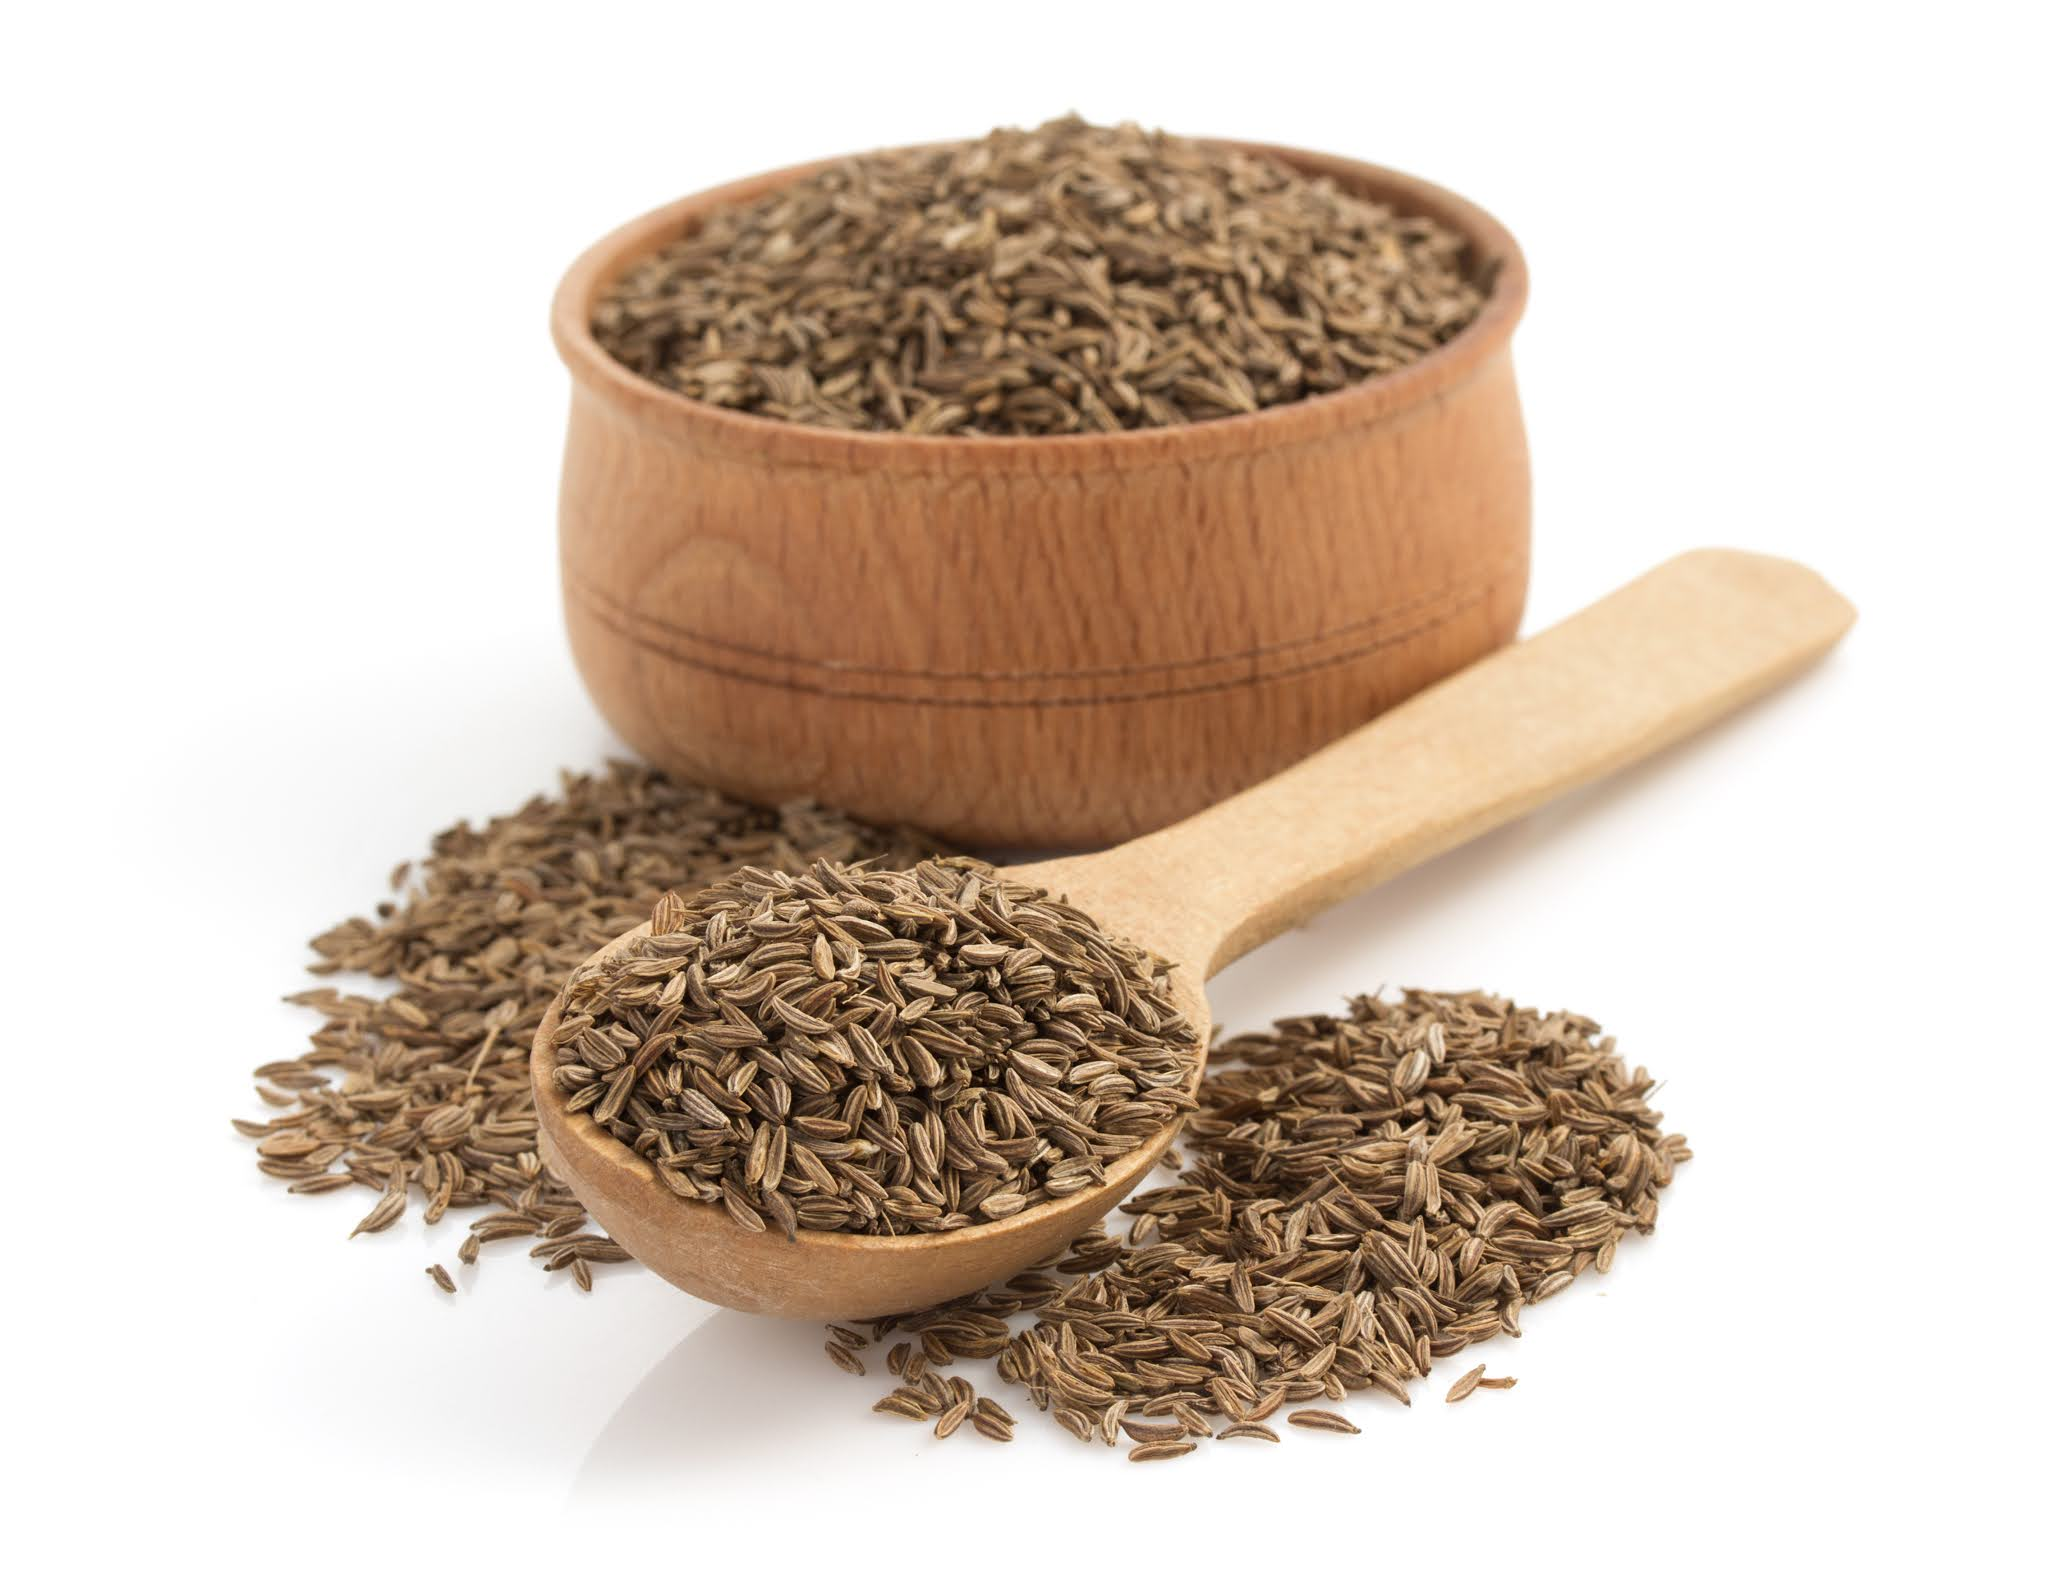 reduce acidity problem naturally at home by Cumin seeds